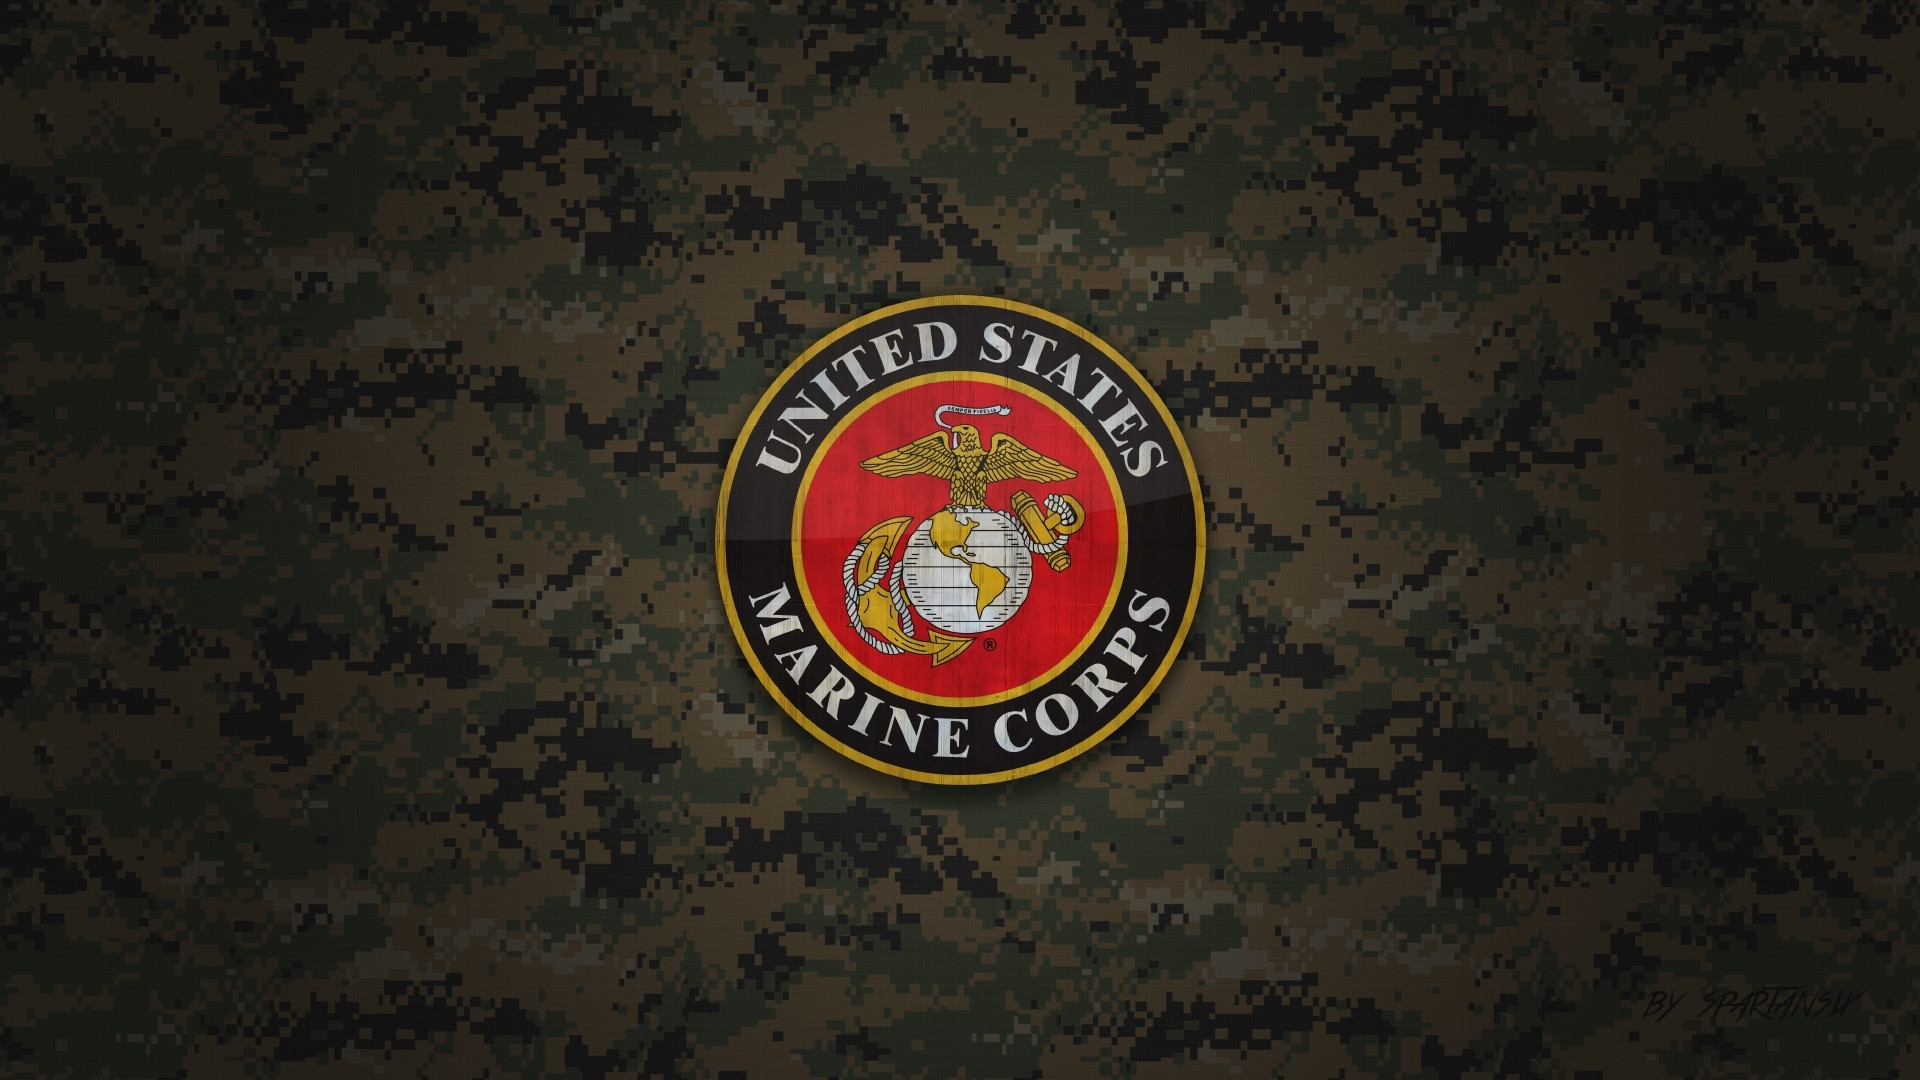 marine corps screensavers and wallpaper (57+ images)